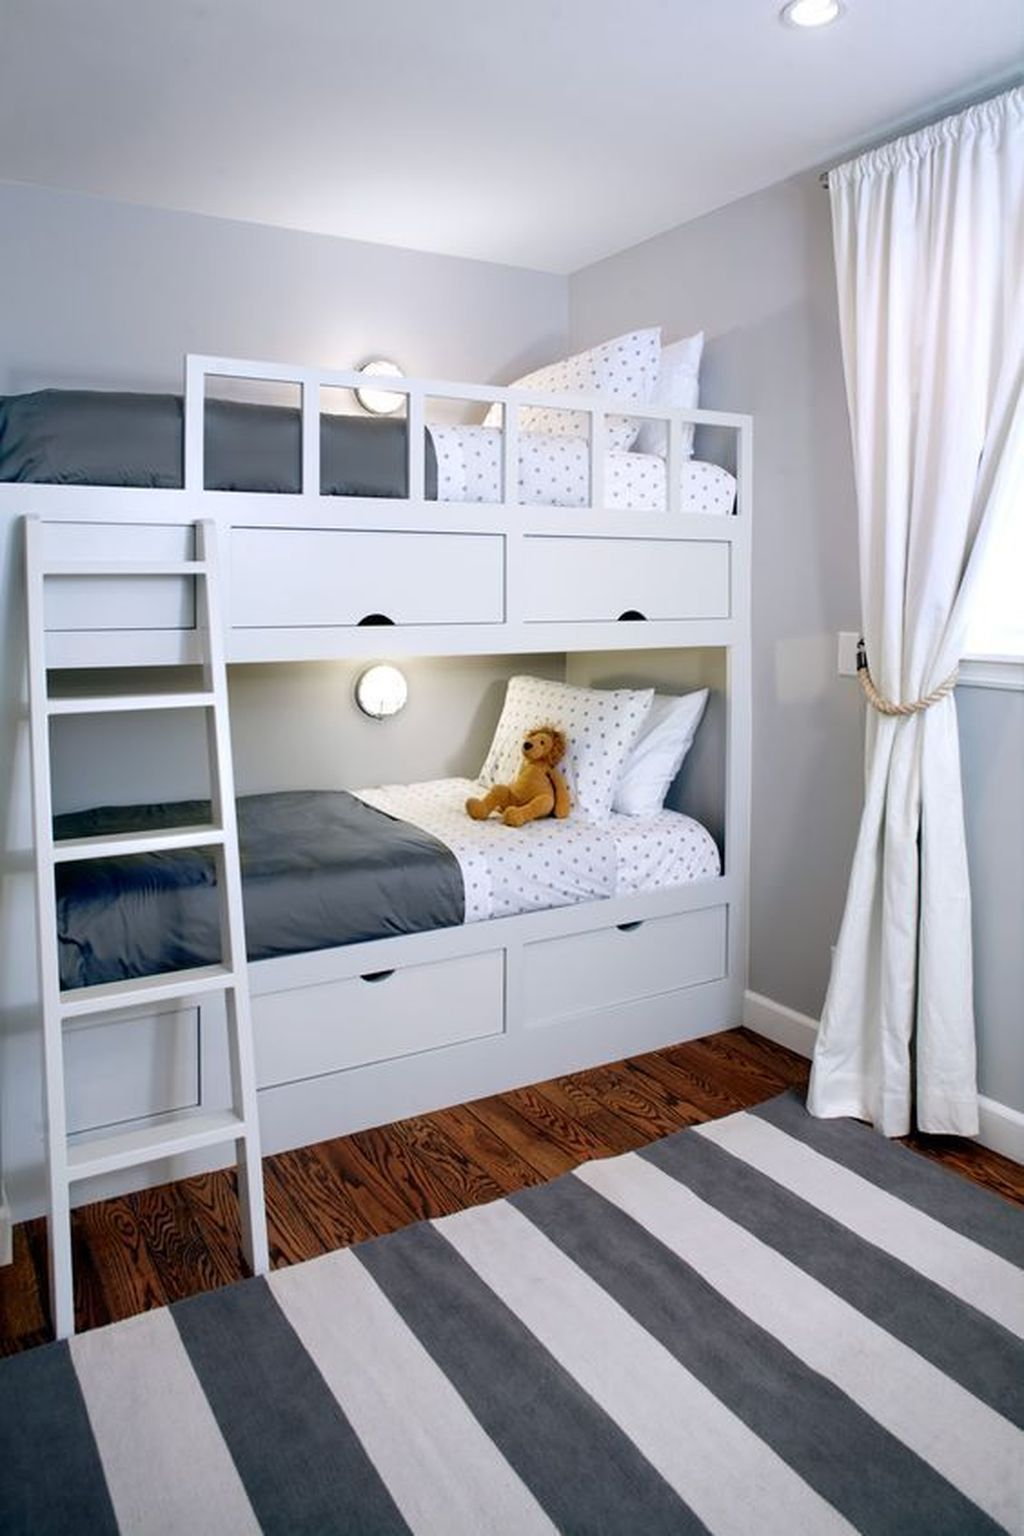 38 Unique Boys Bunk Bed Room Design Ideas To Try Asap in ...